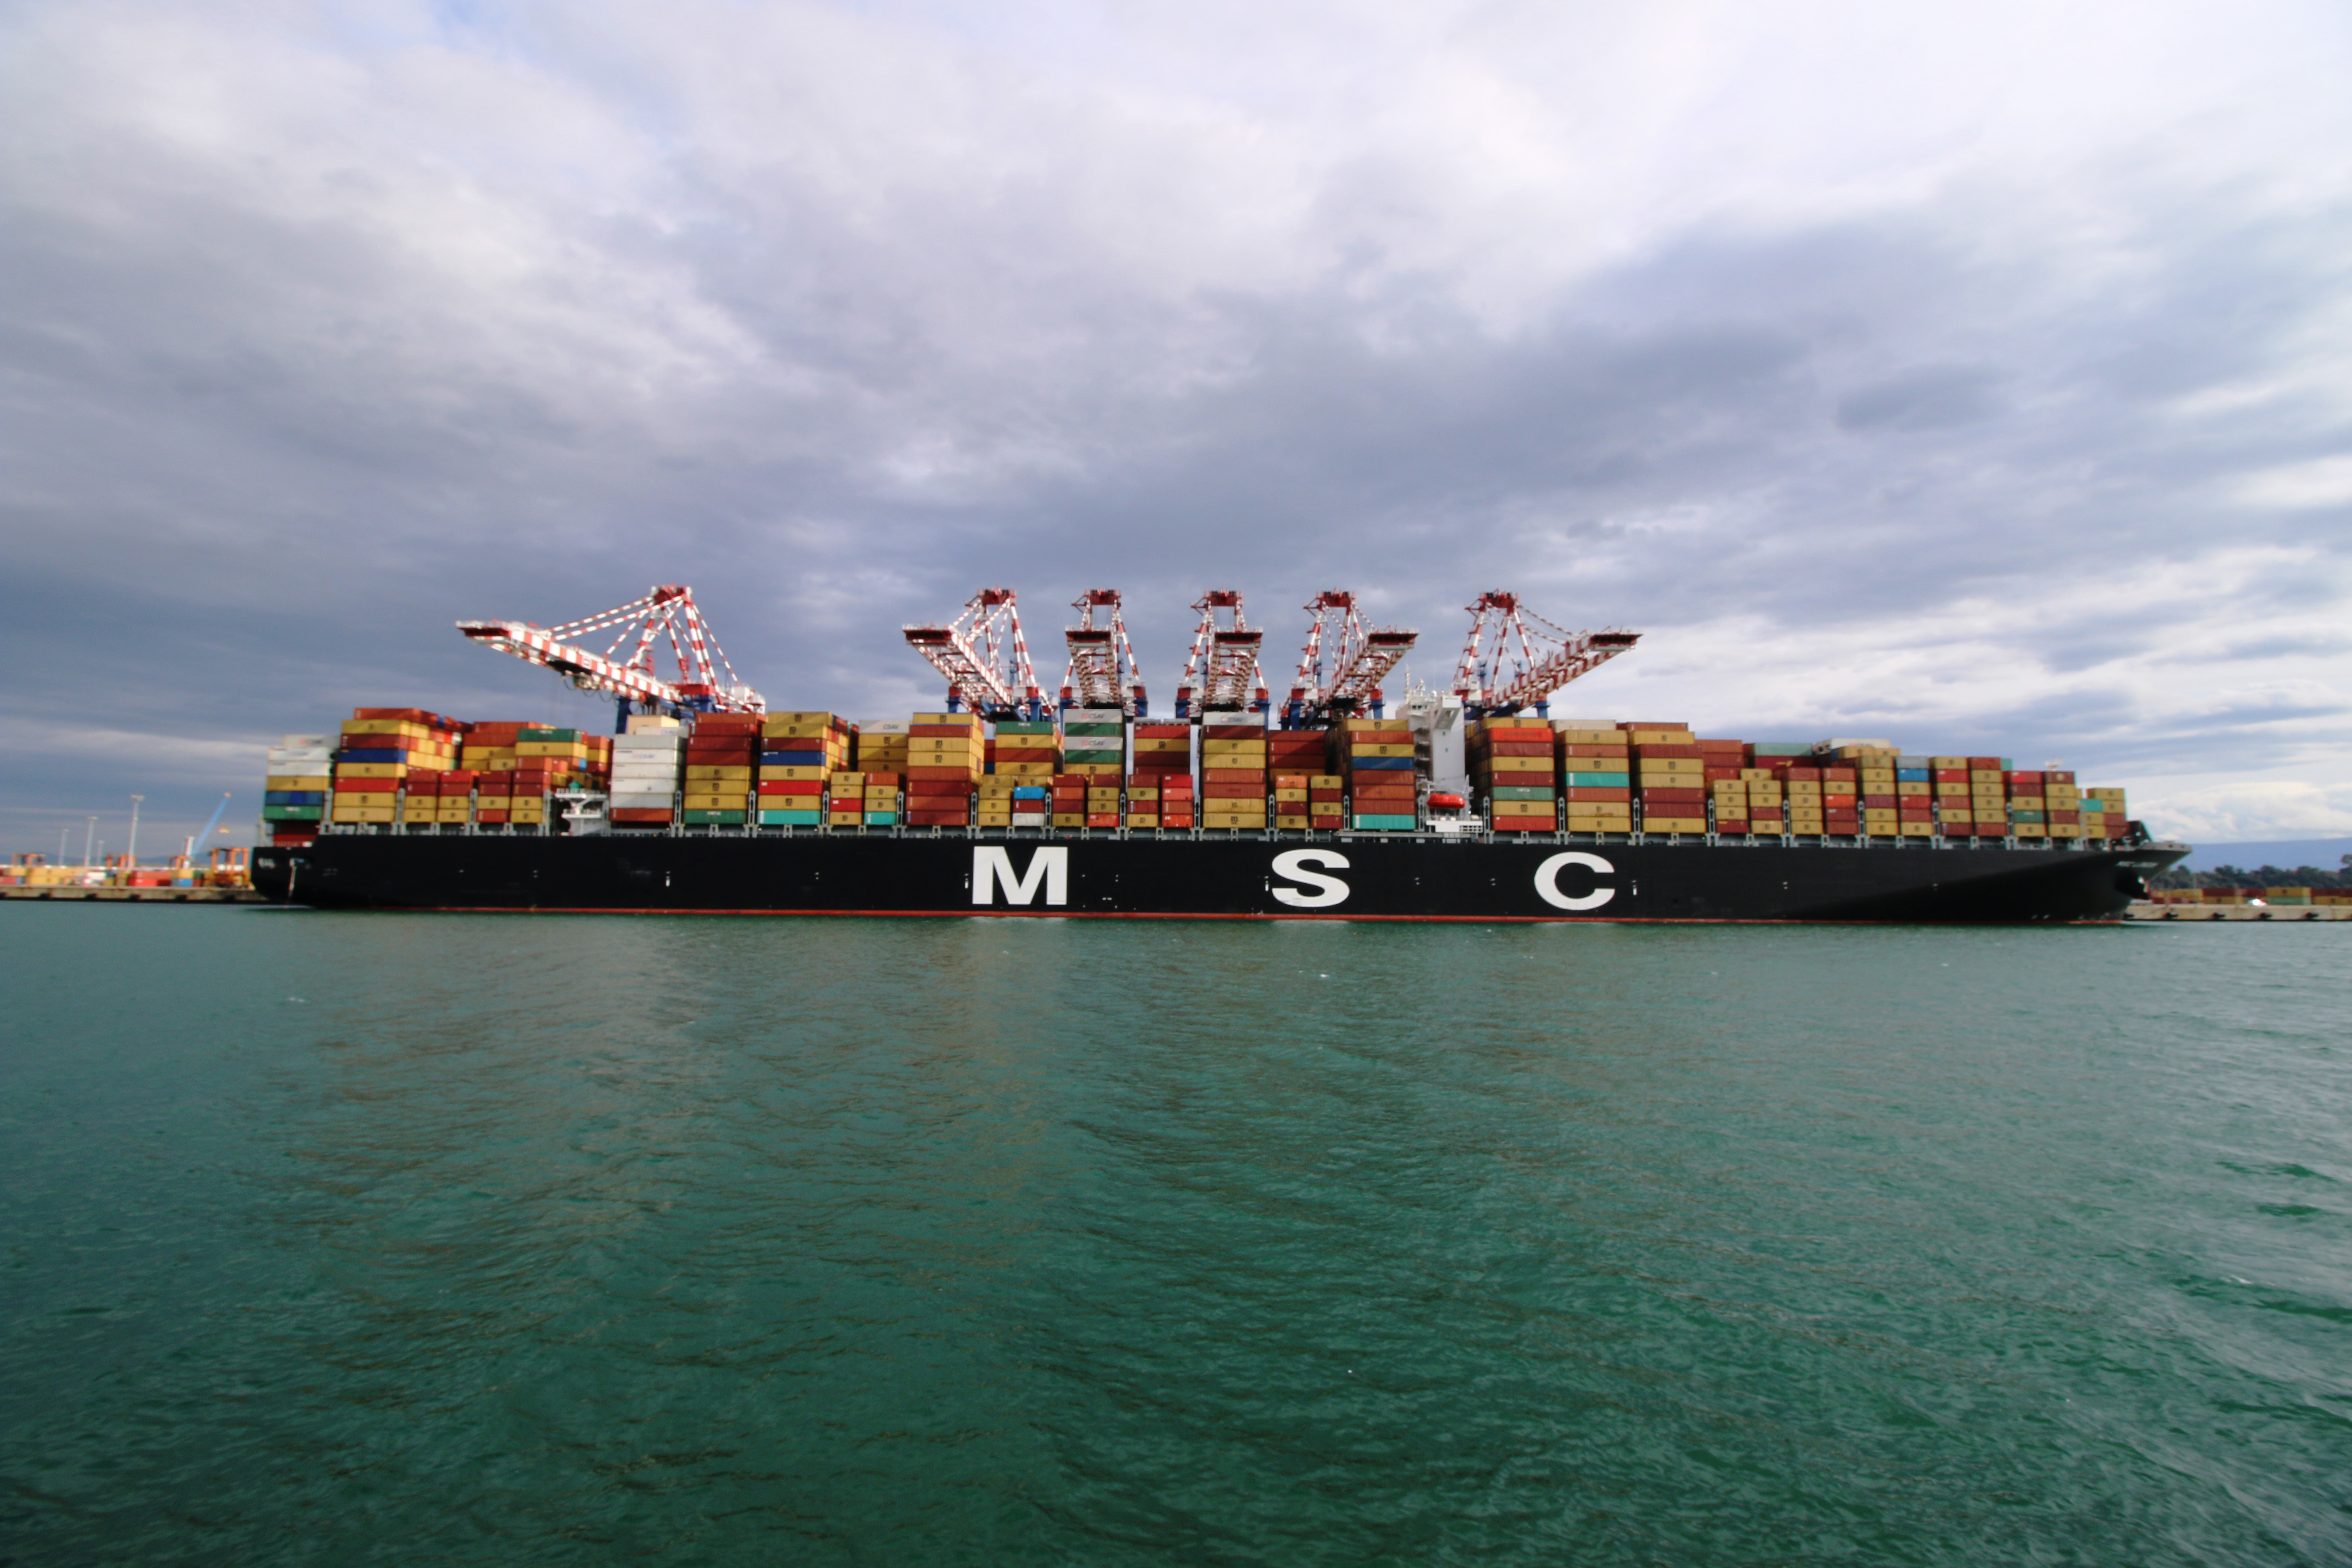 MSC London in Gioia Tauro